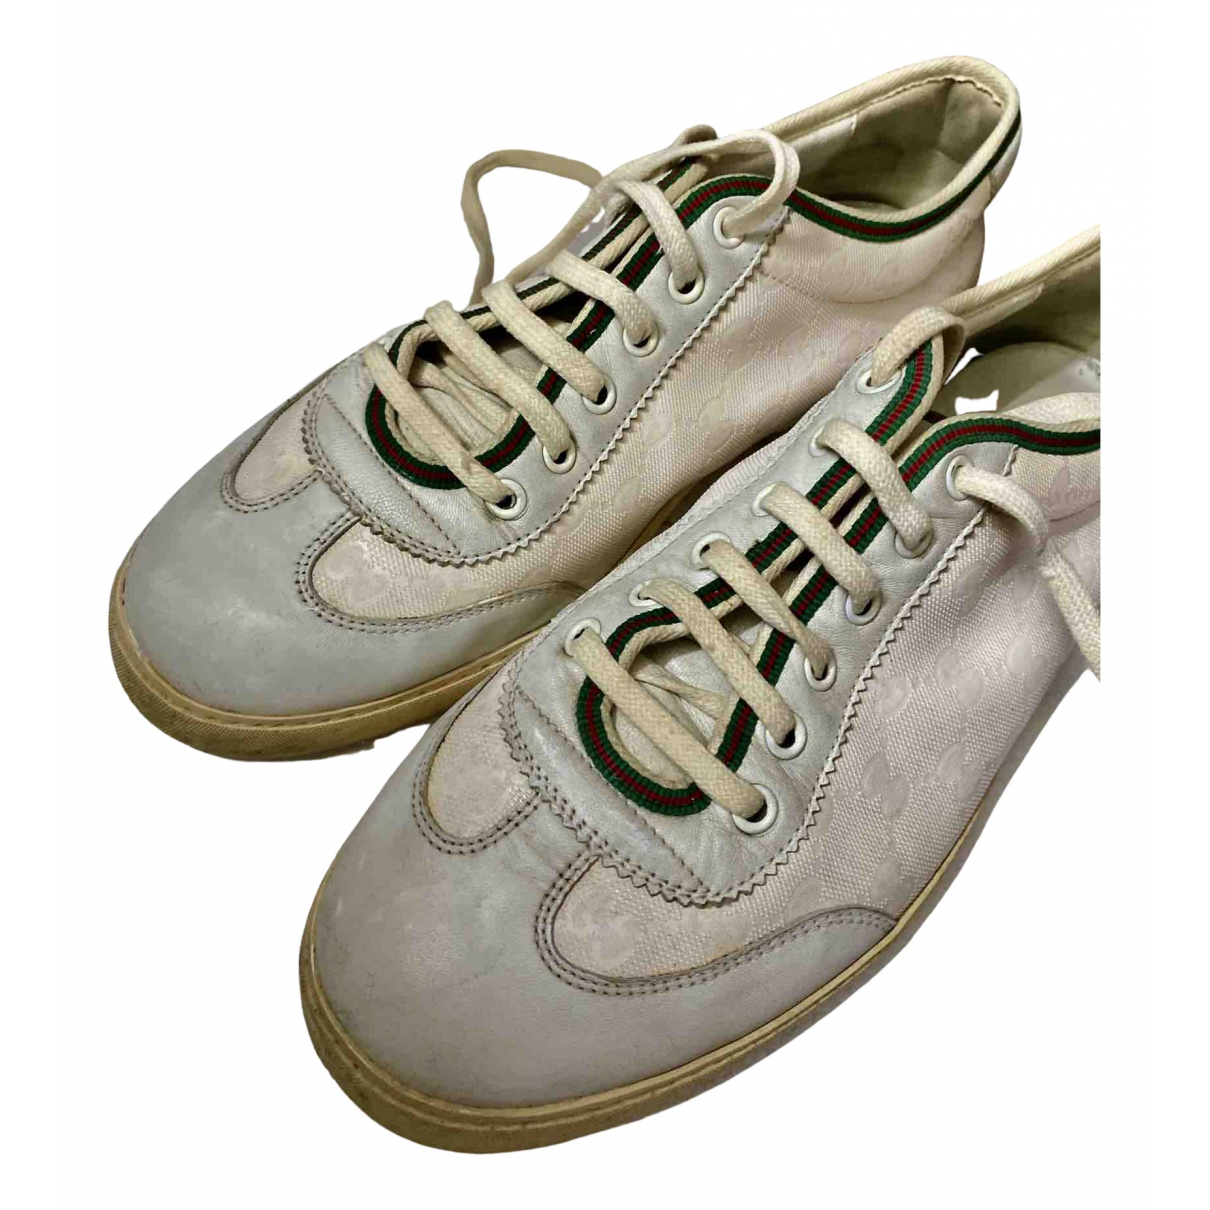 Gucci N White Patent leather Lace ups for Men 8 UK